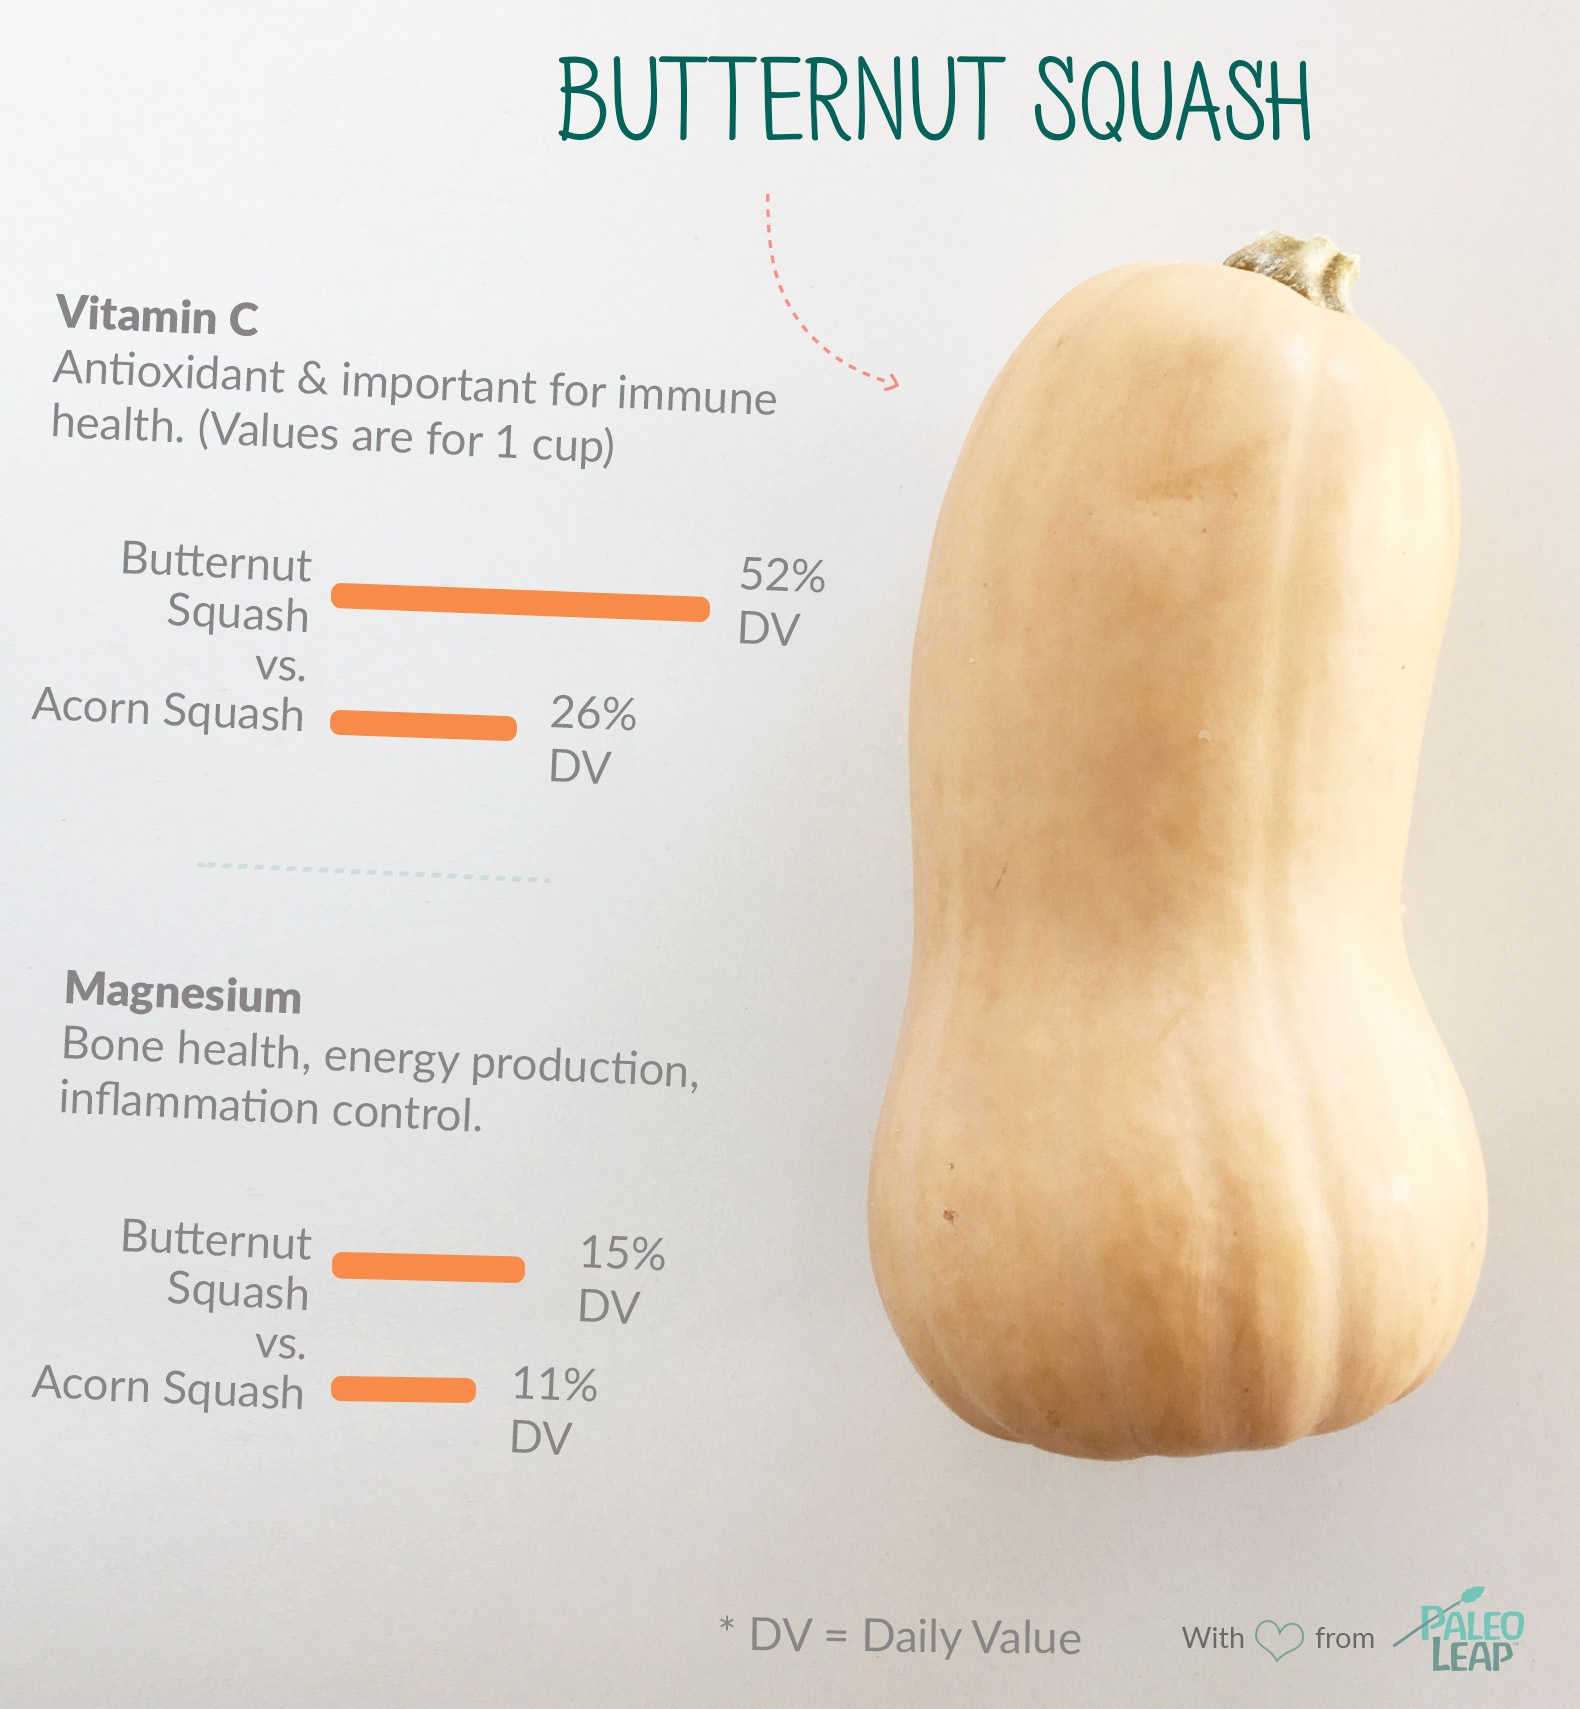 Butternut Squash highlights